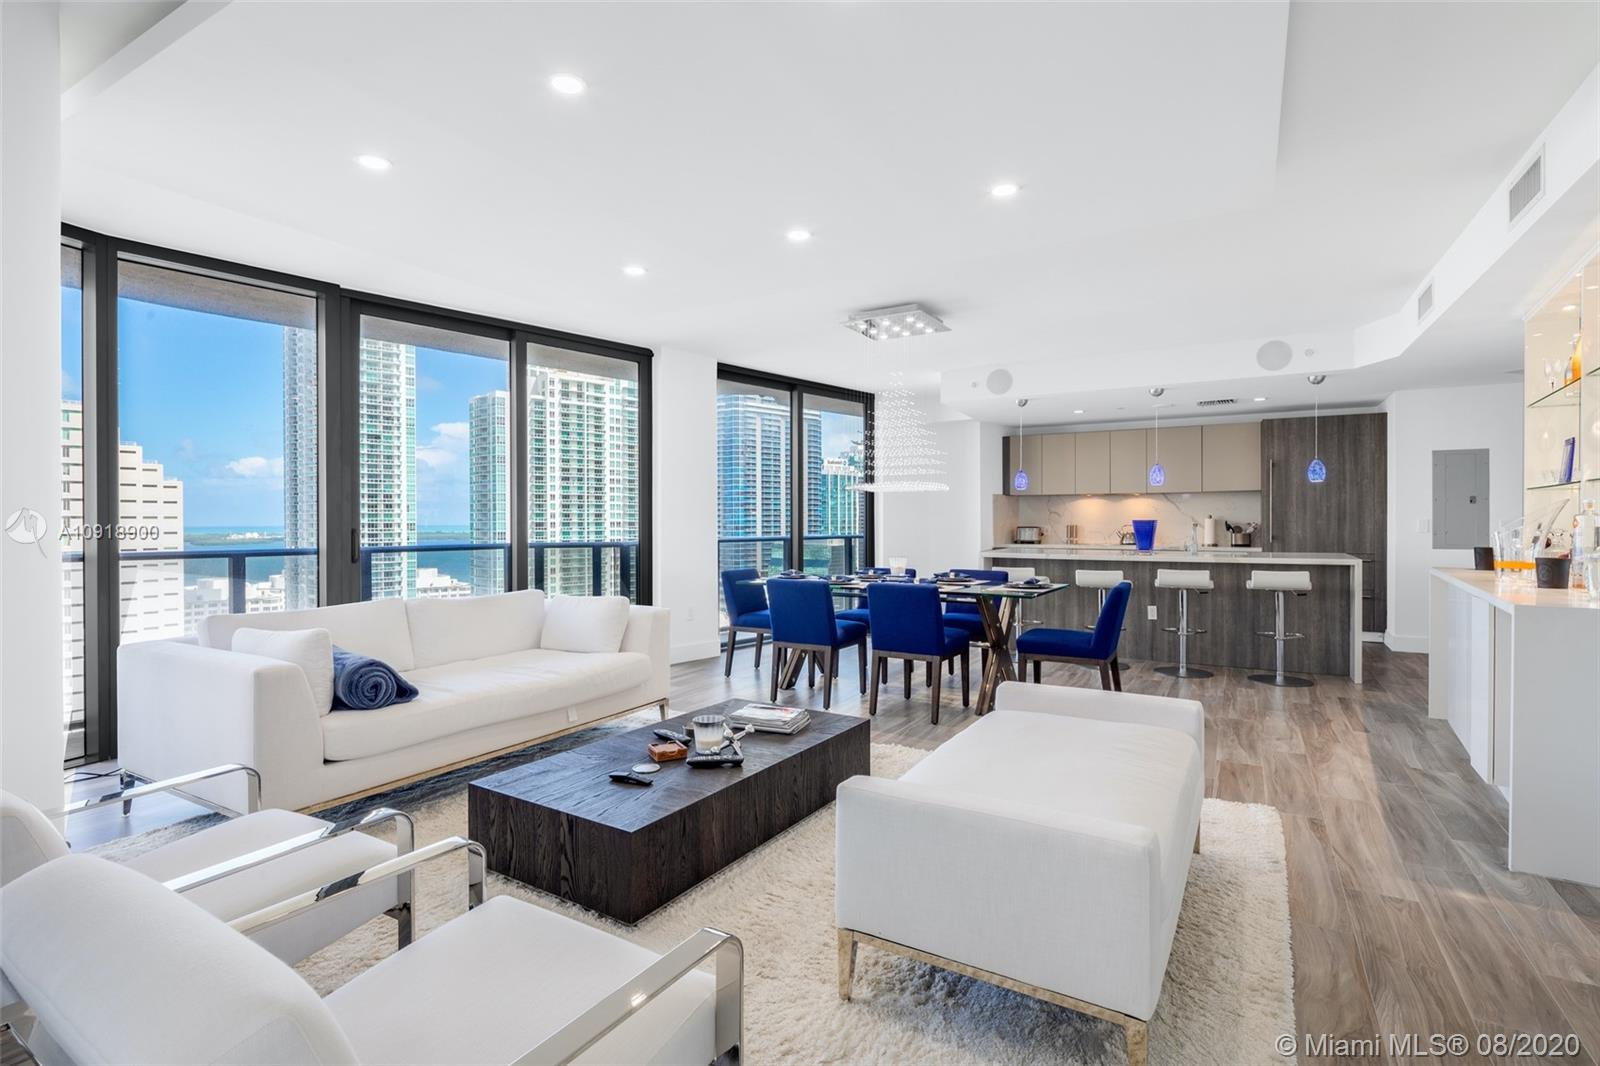 Located in the Heart of Brickell, this rare NE Corner Combination Residence at SLS Lux features nearly 2500 SF of Living Space w/ a large wraparound terrace. Residence 2605 is a 3 Bedroom + Den w/ 4